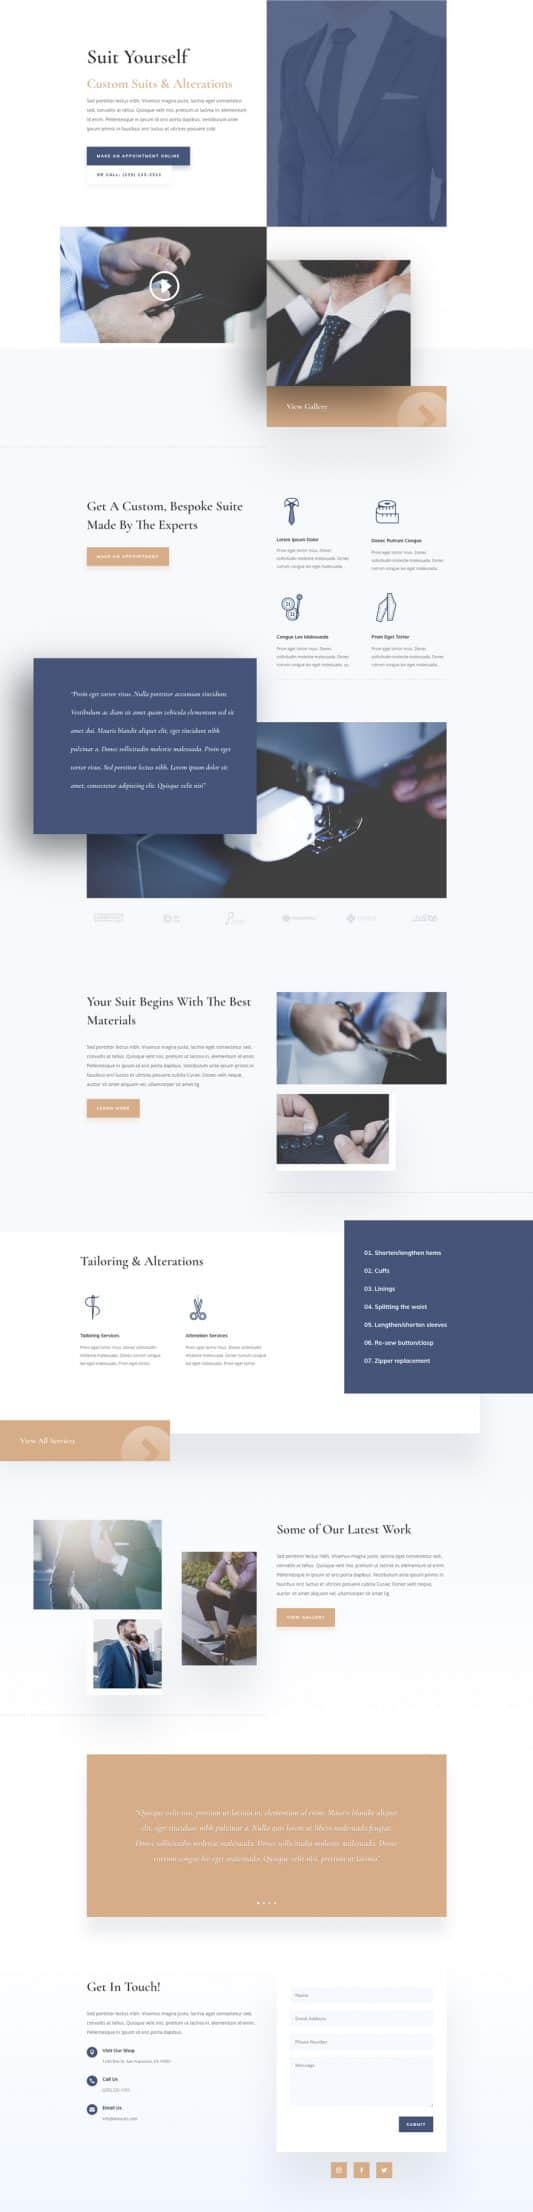 Suit Tailor Landing Page Style 1